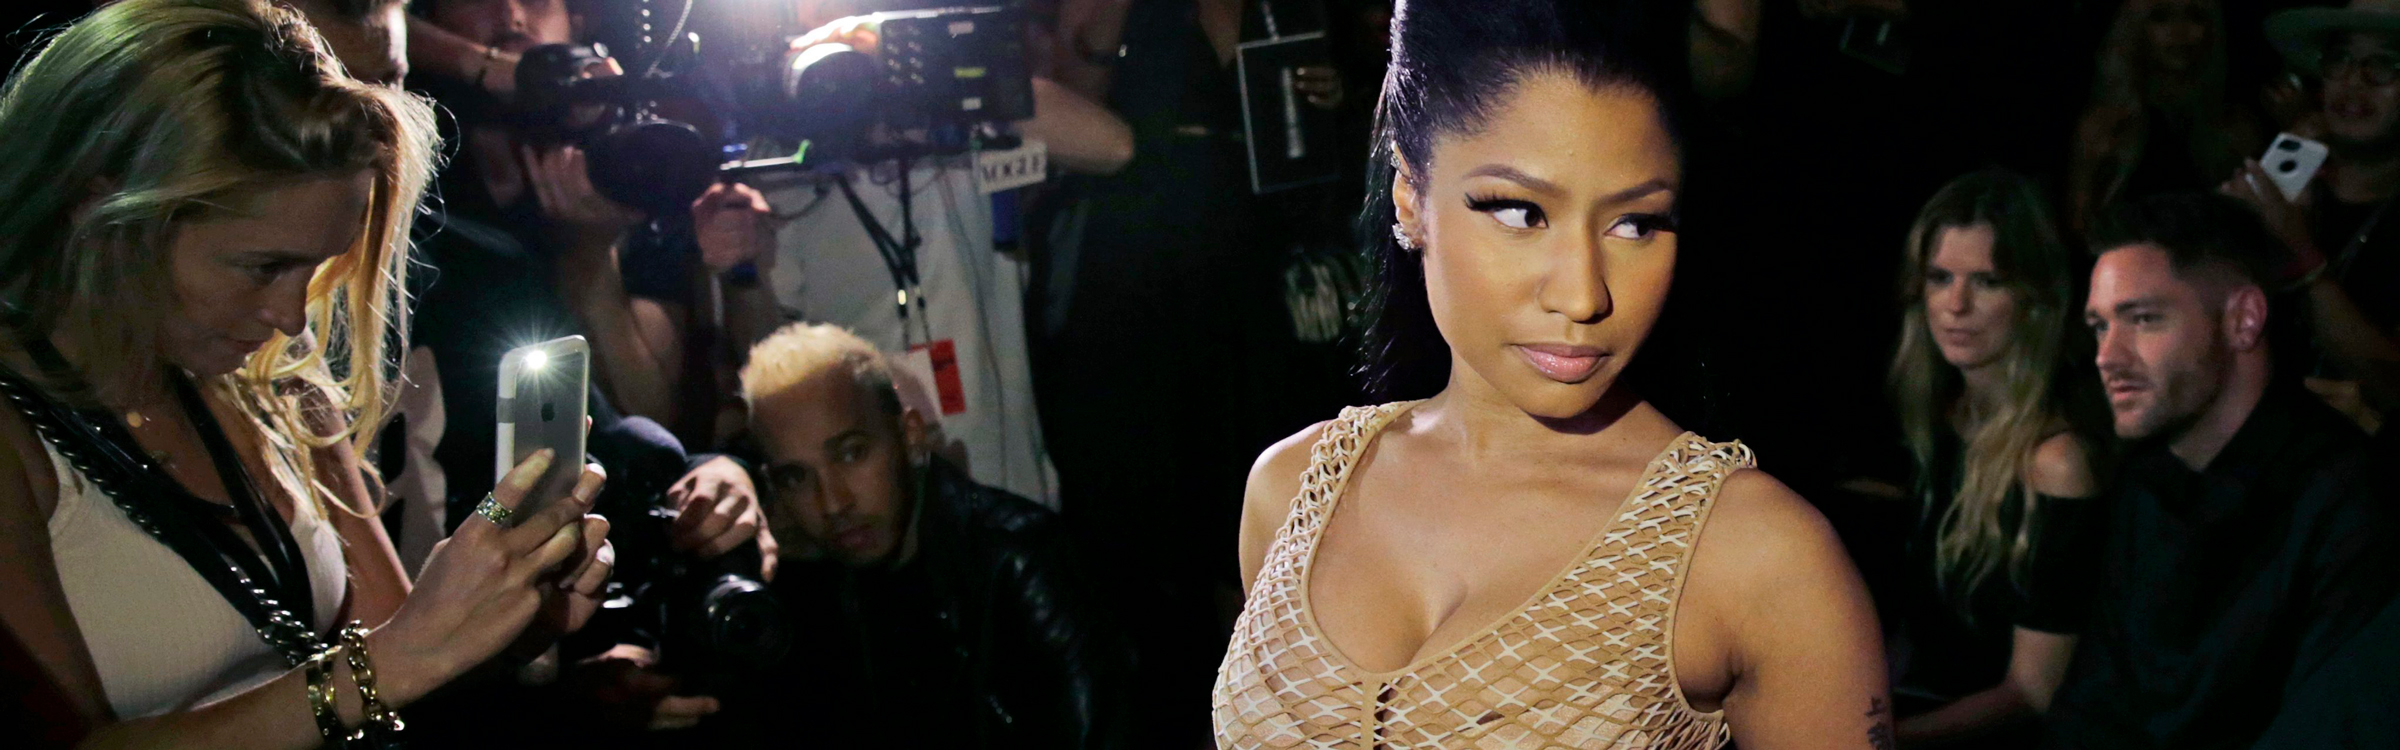 Nickiminaj header